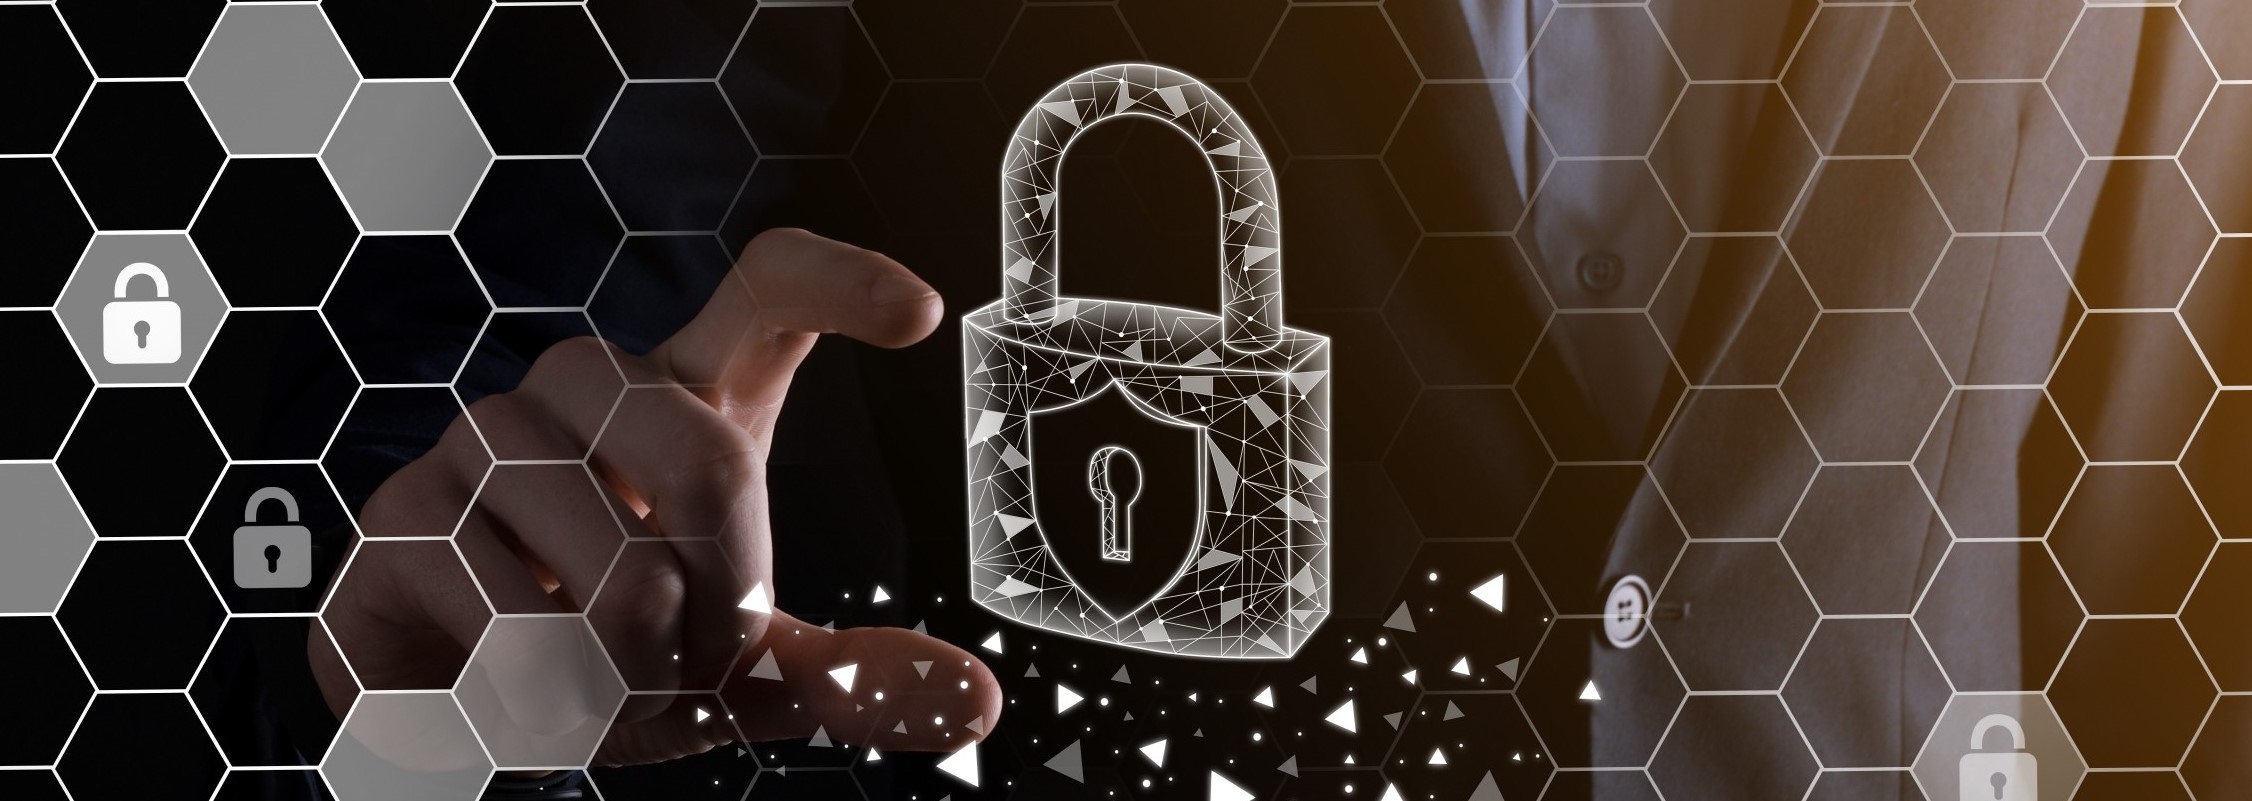 Cybersecurity terms that everyone should know